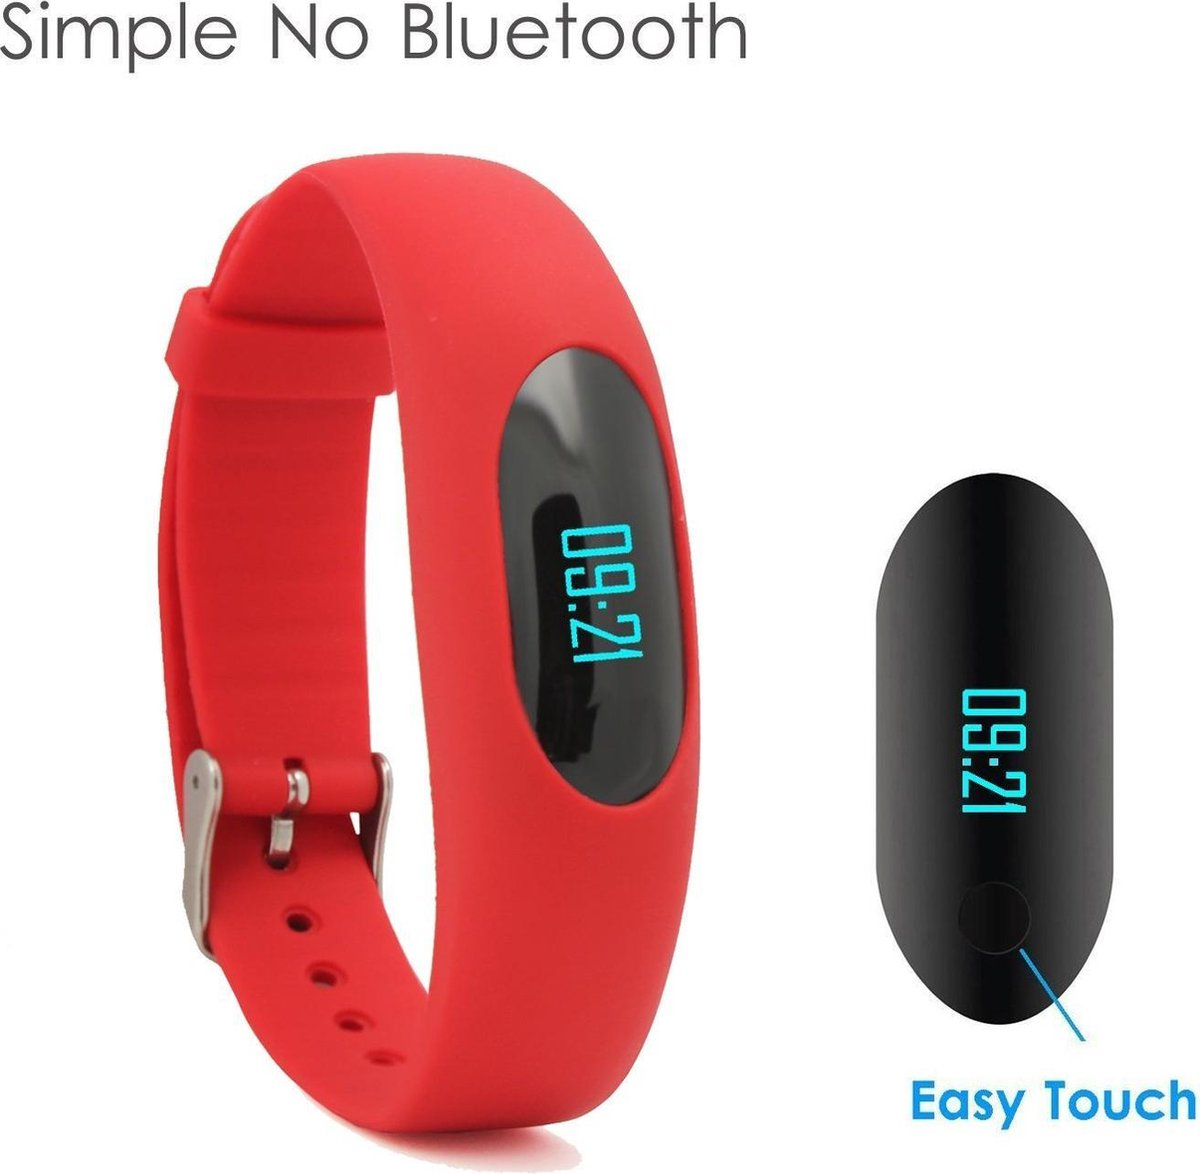 Fitness Tracker Non-bluetooth Watch Pedometer Polsband ''Rood'' - Wilfull / Yamay